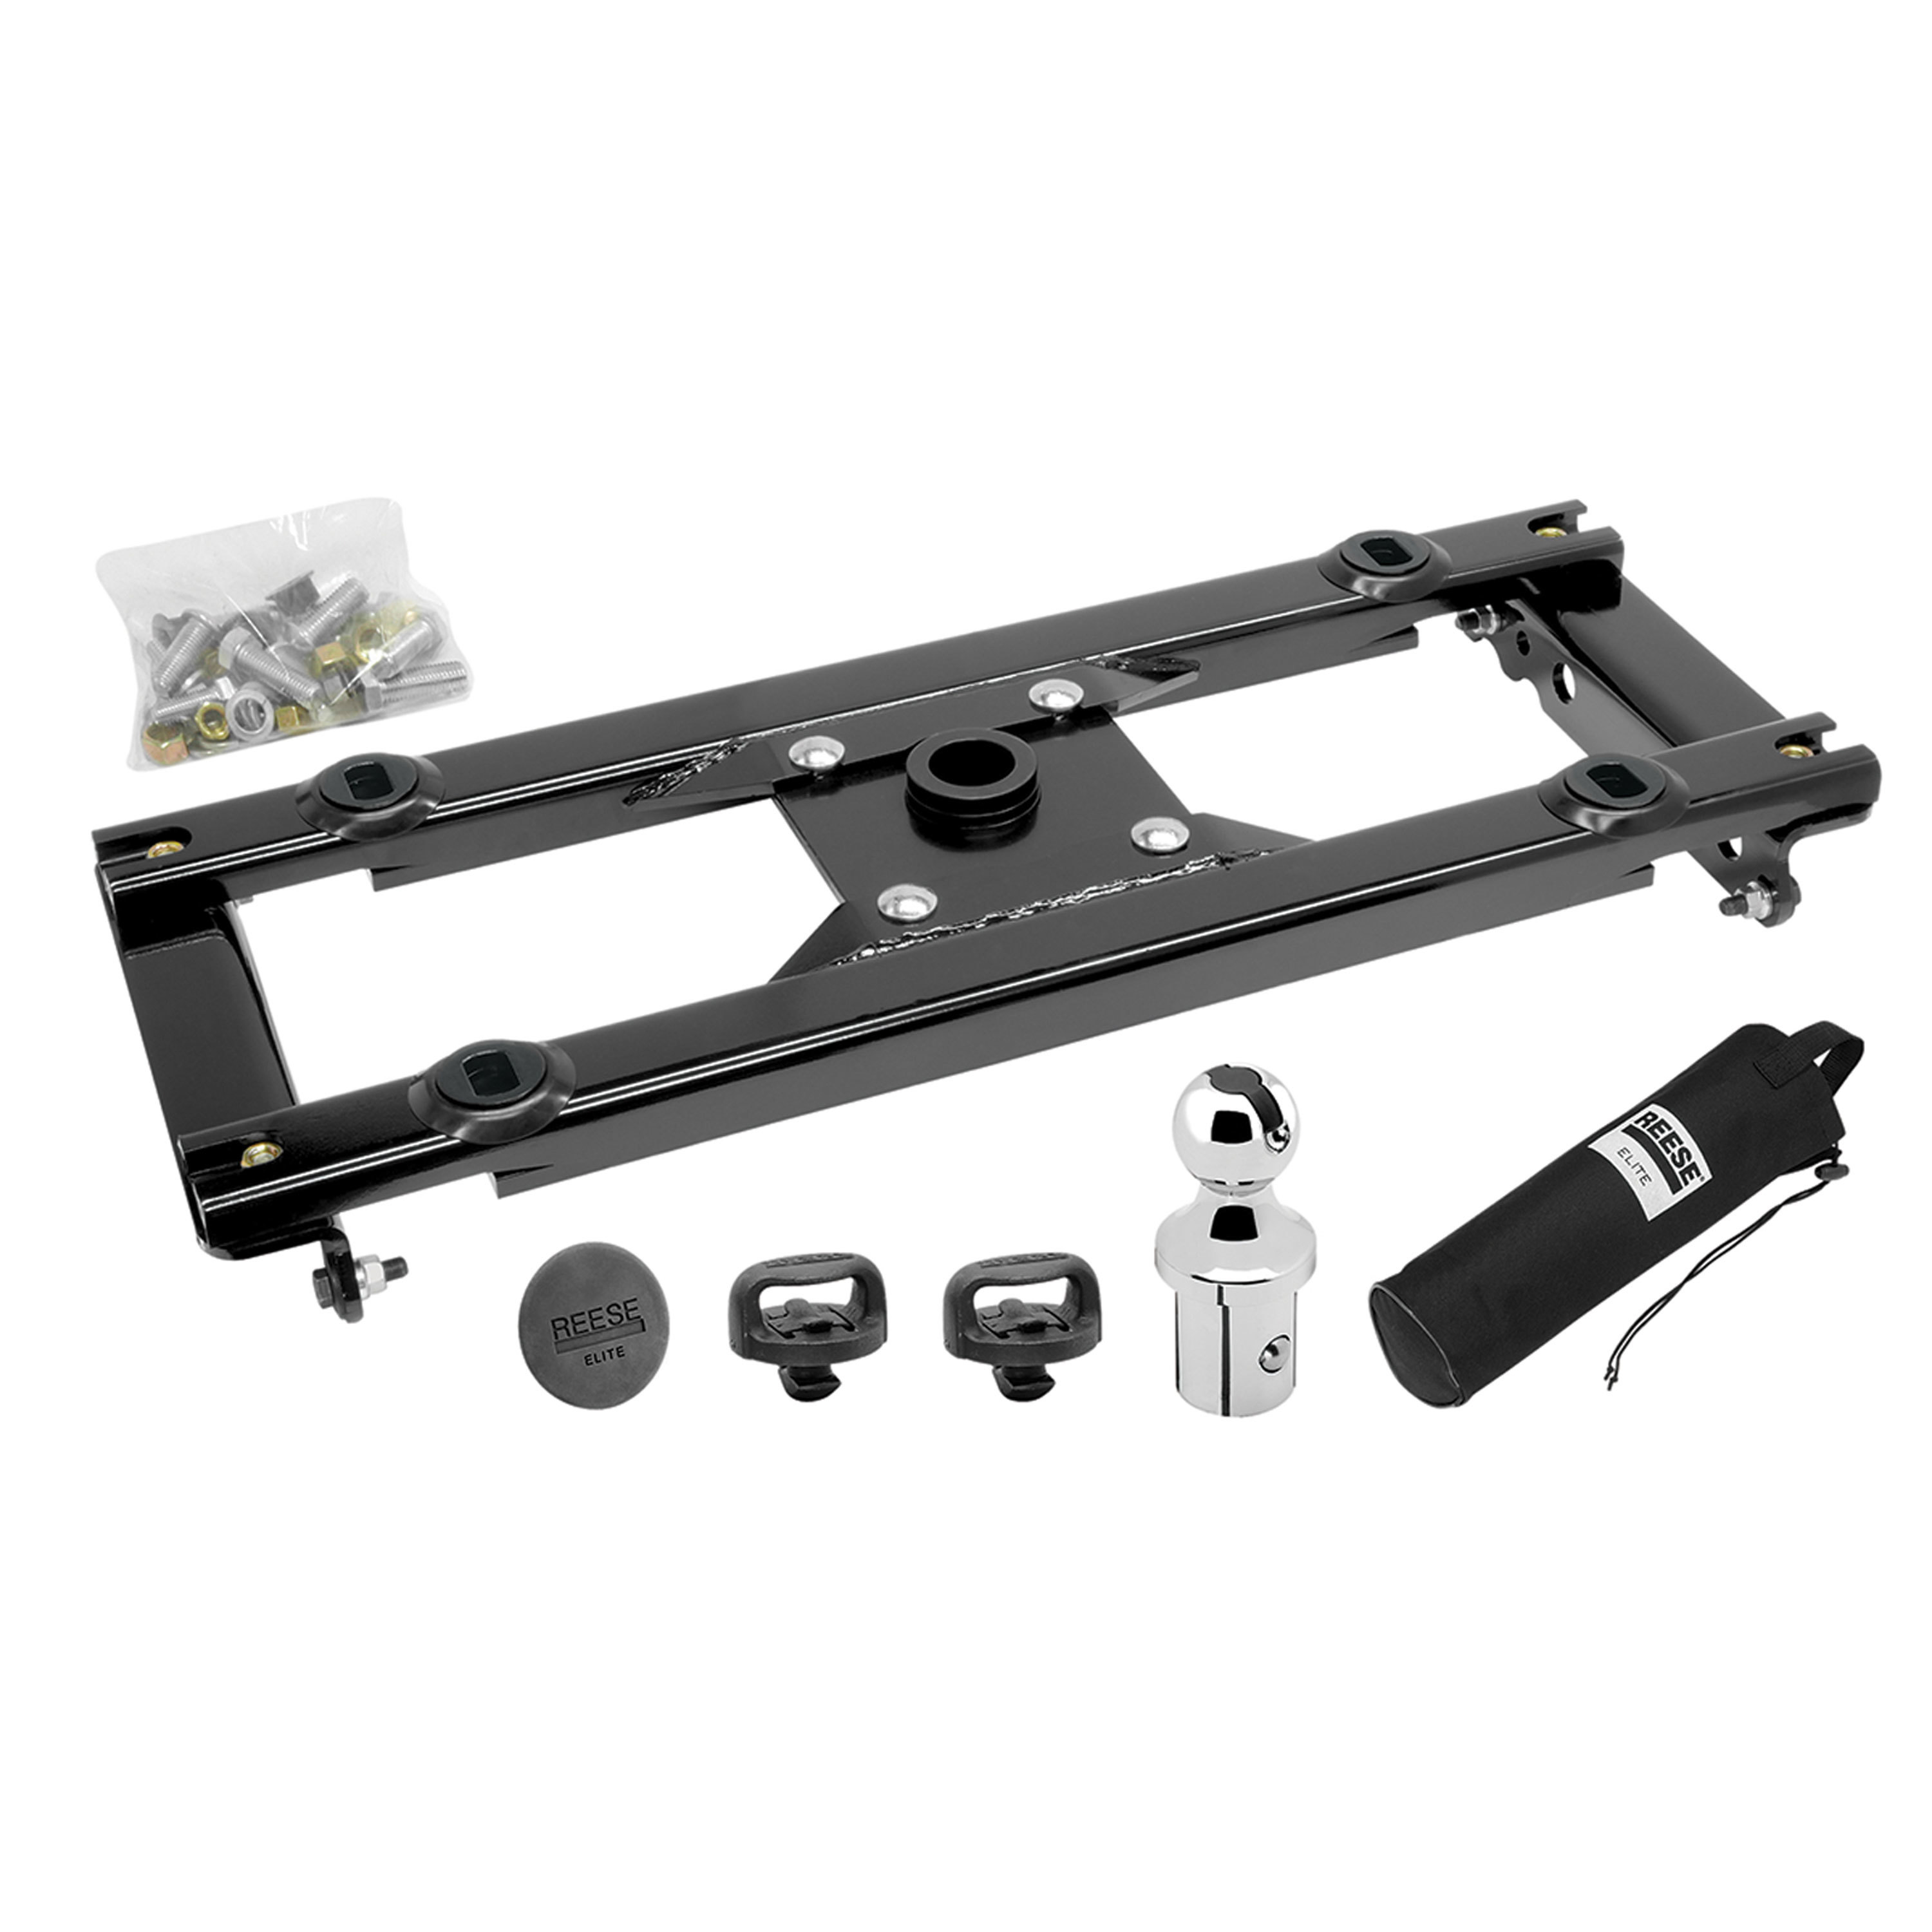 Reese 30138-26 Elite Under-Bed 25K Complete Gooseneck Hitch - Ford Super Duty '11-'16